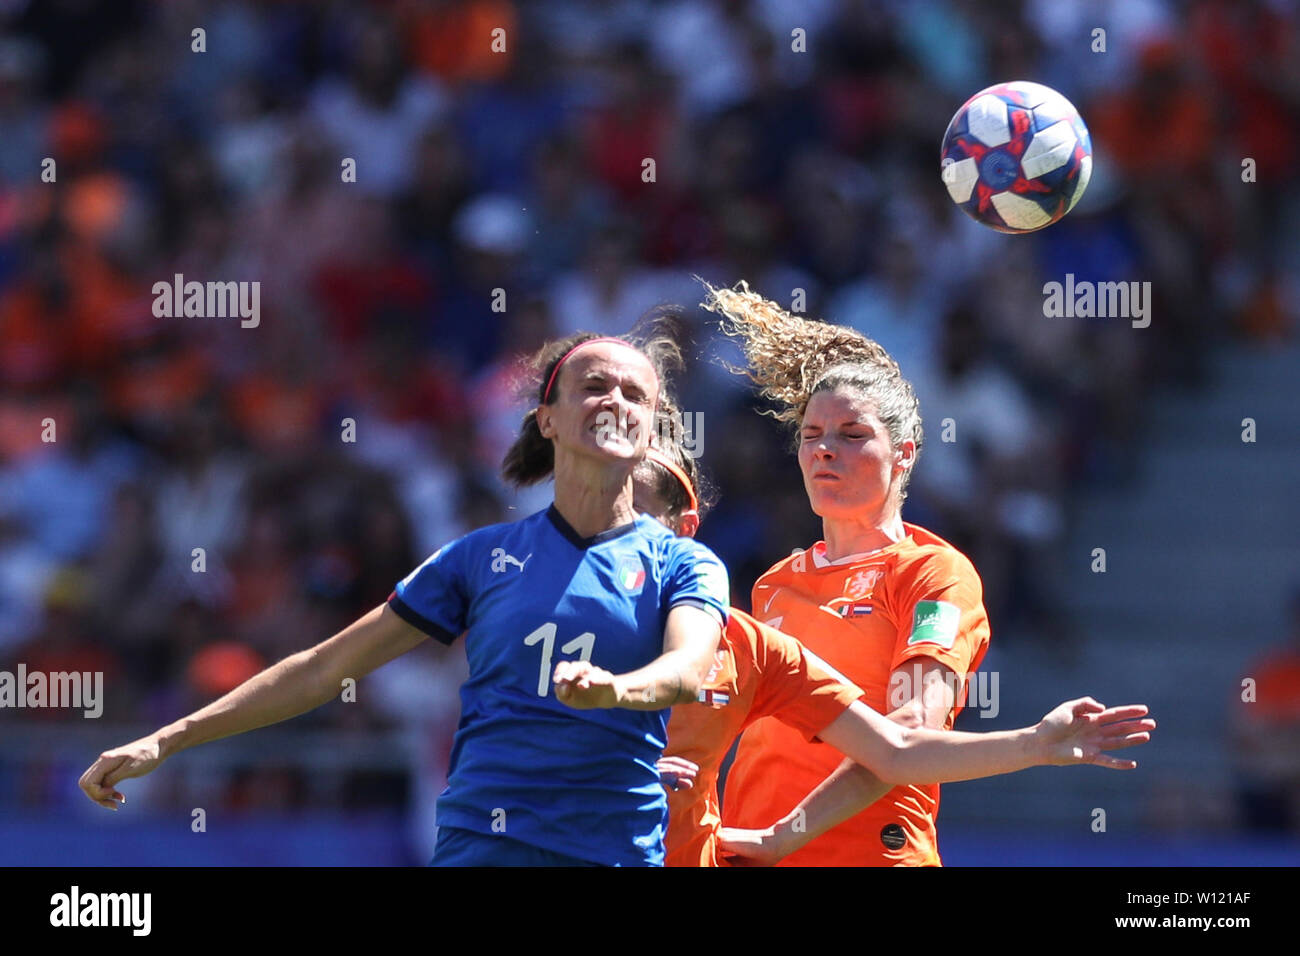 Valenciennes, France. 29th June, 2019. Barbara Bonansea (L) of Italy vies with Merel Van Dongen (R) of the Netherlands during the quarterfinal between Italy and the Netherlands at the 2019 FIFA Women's World Cup in Valenciennes, France, June 29, 2019. Credit: Zheng Huansong/Xinhua/Alamy Live News Stock Photo